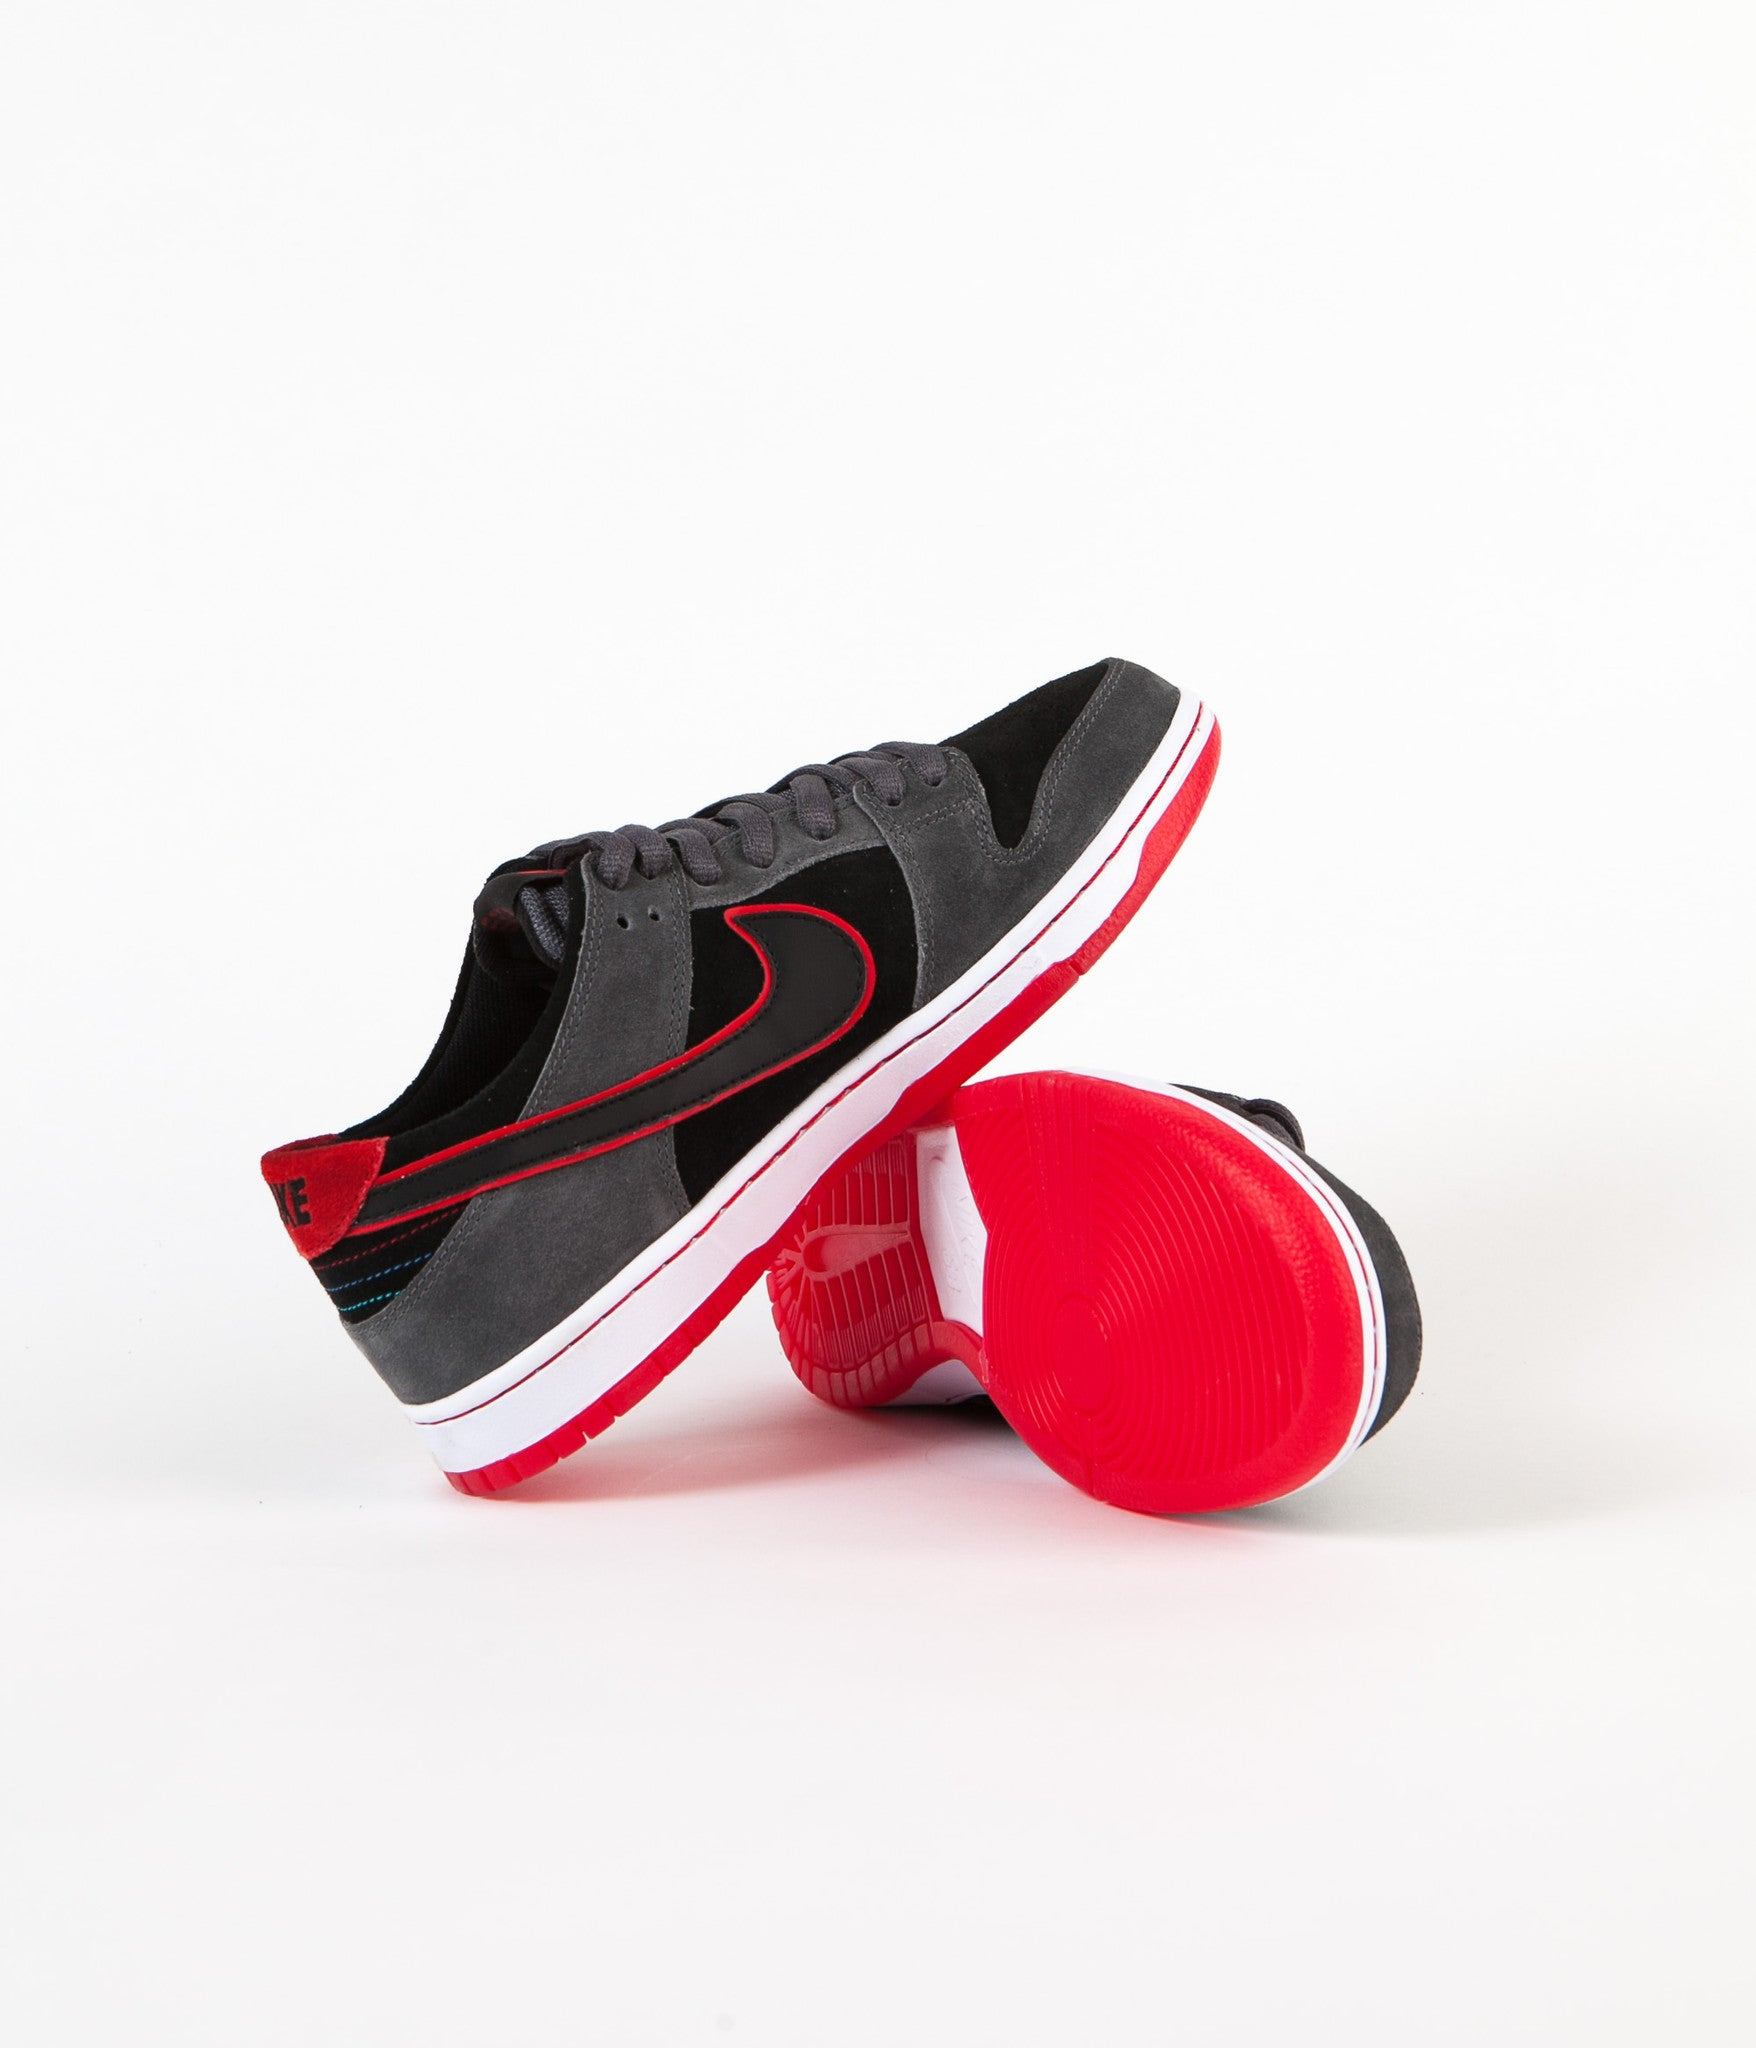 official photos ace1b c44d7 ... Nike SB Dunk Low Pro Ishod Wair Shoes - Dark Grey   Black - University  Red ...